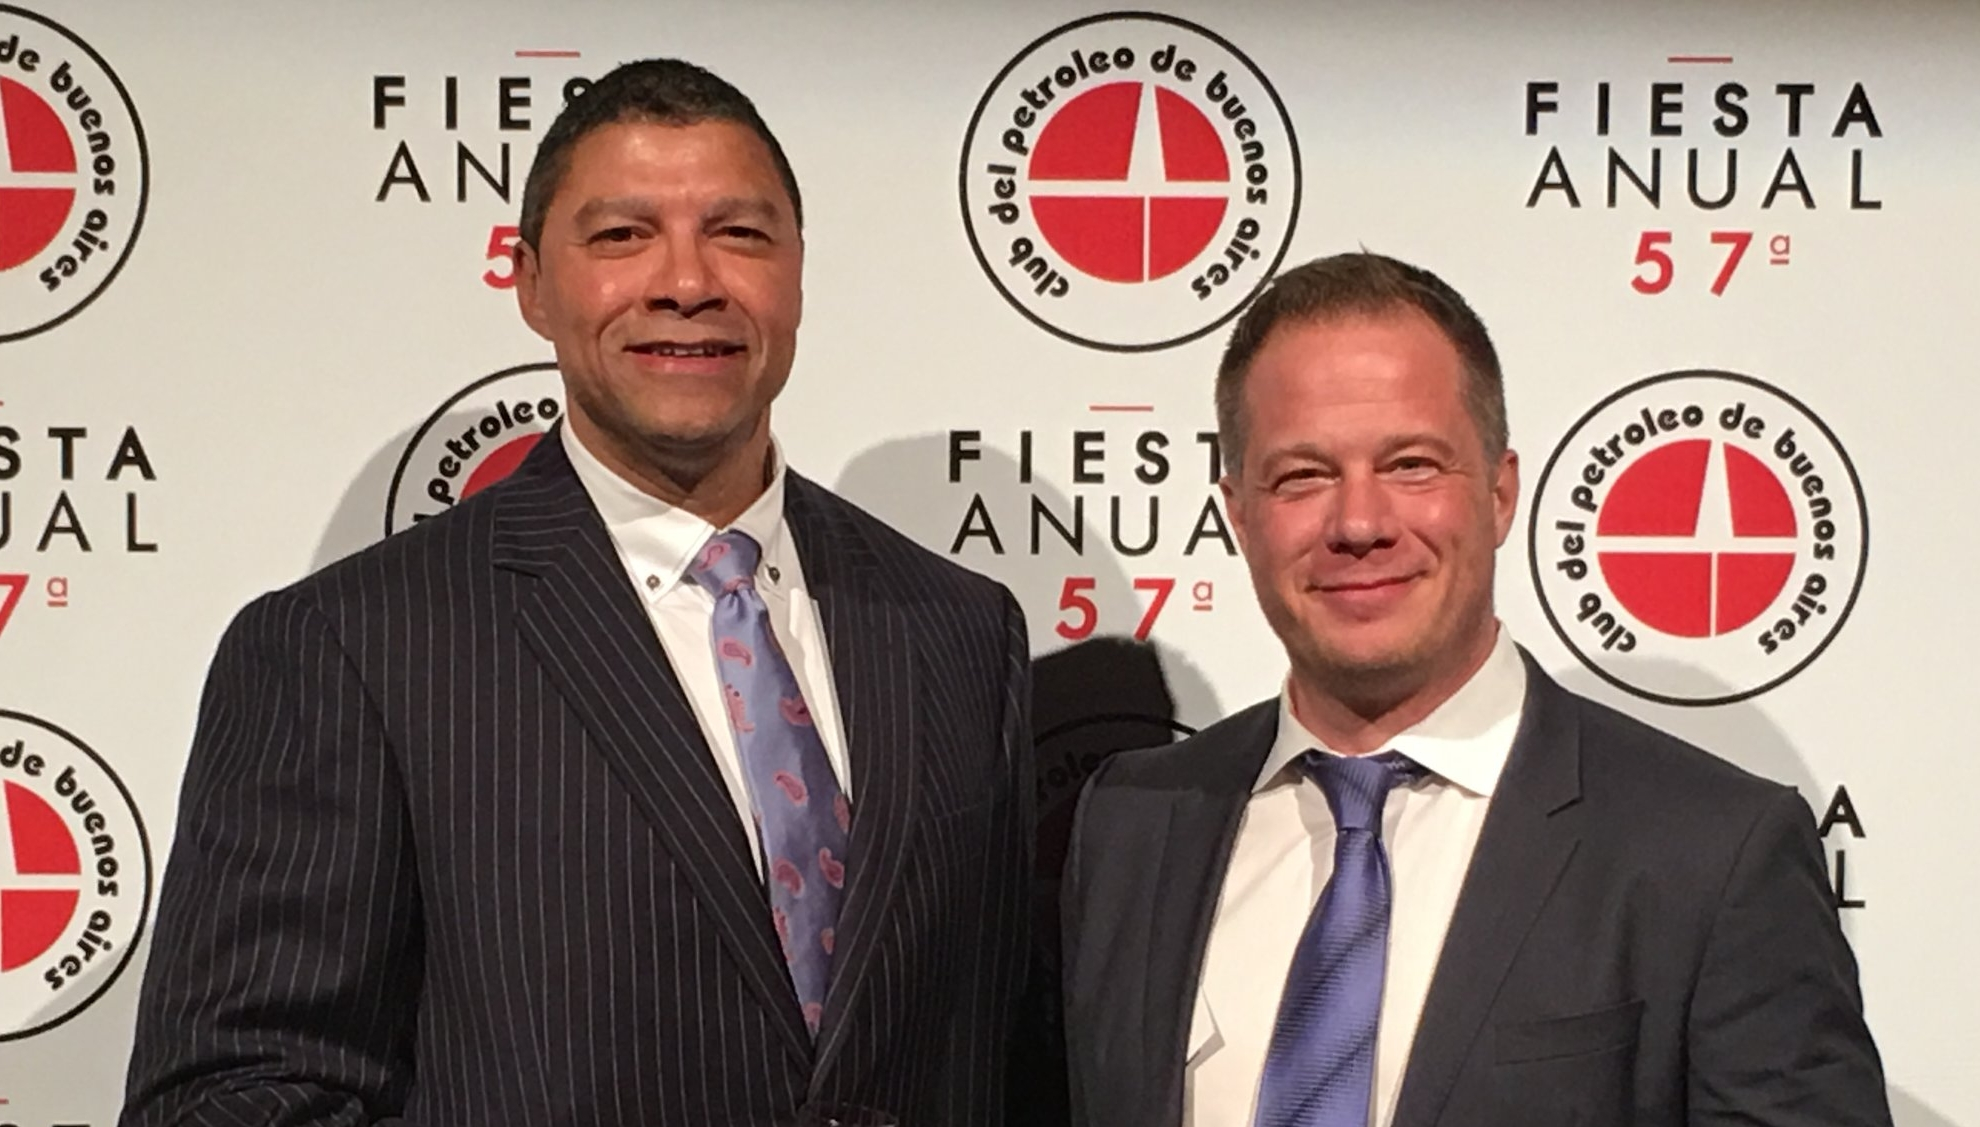 Pictured here, President & CEO, Sean Judge and Director of Corporate Development, Jason Munro